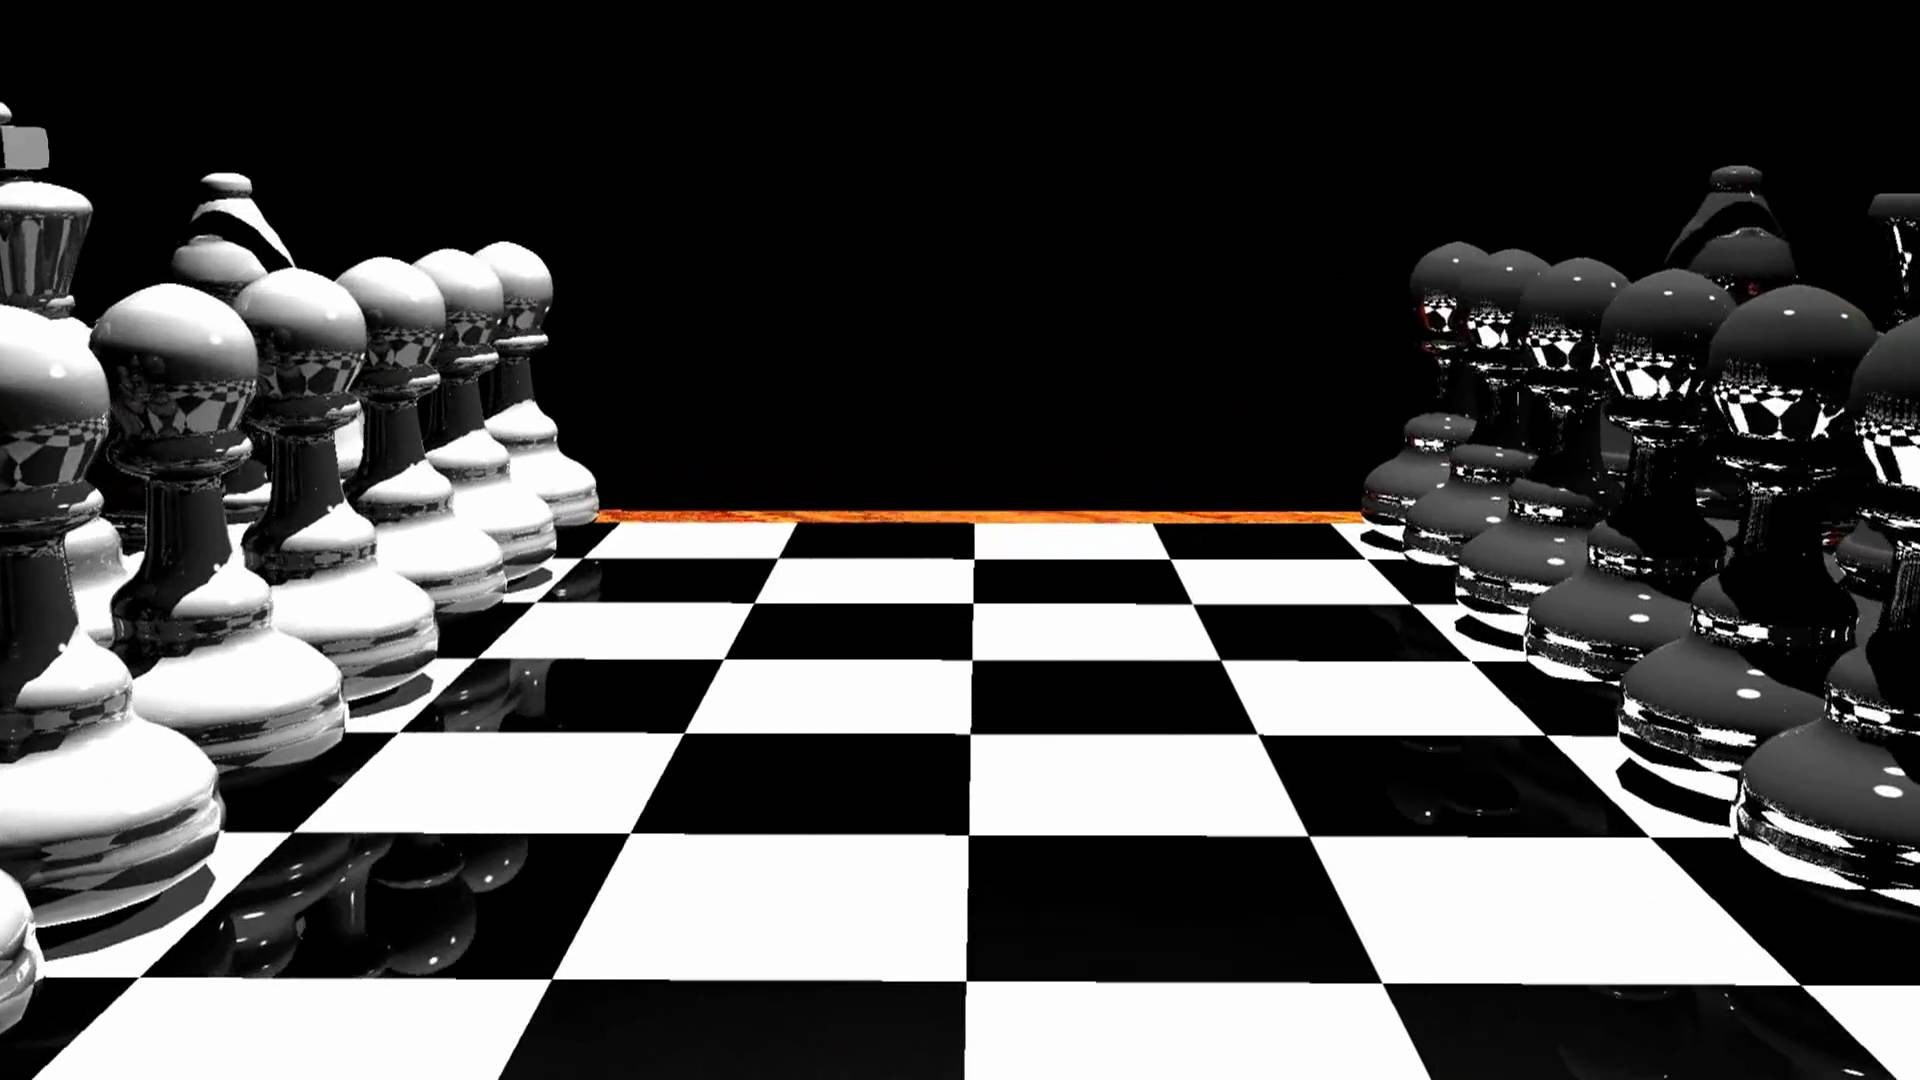 Chess Wallpaper 1 Download Free Amazing HD Wallpapers For Desktop